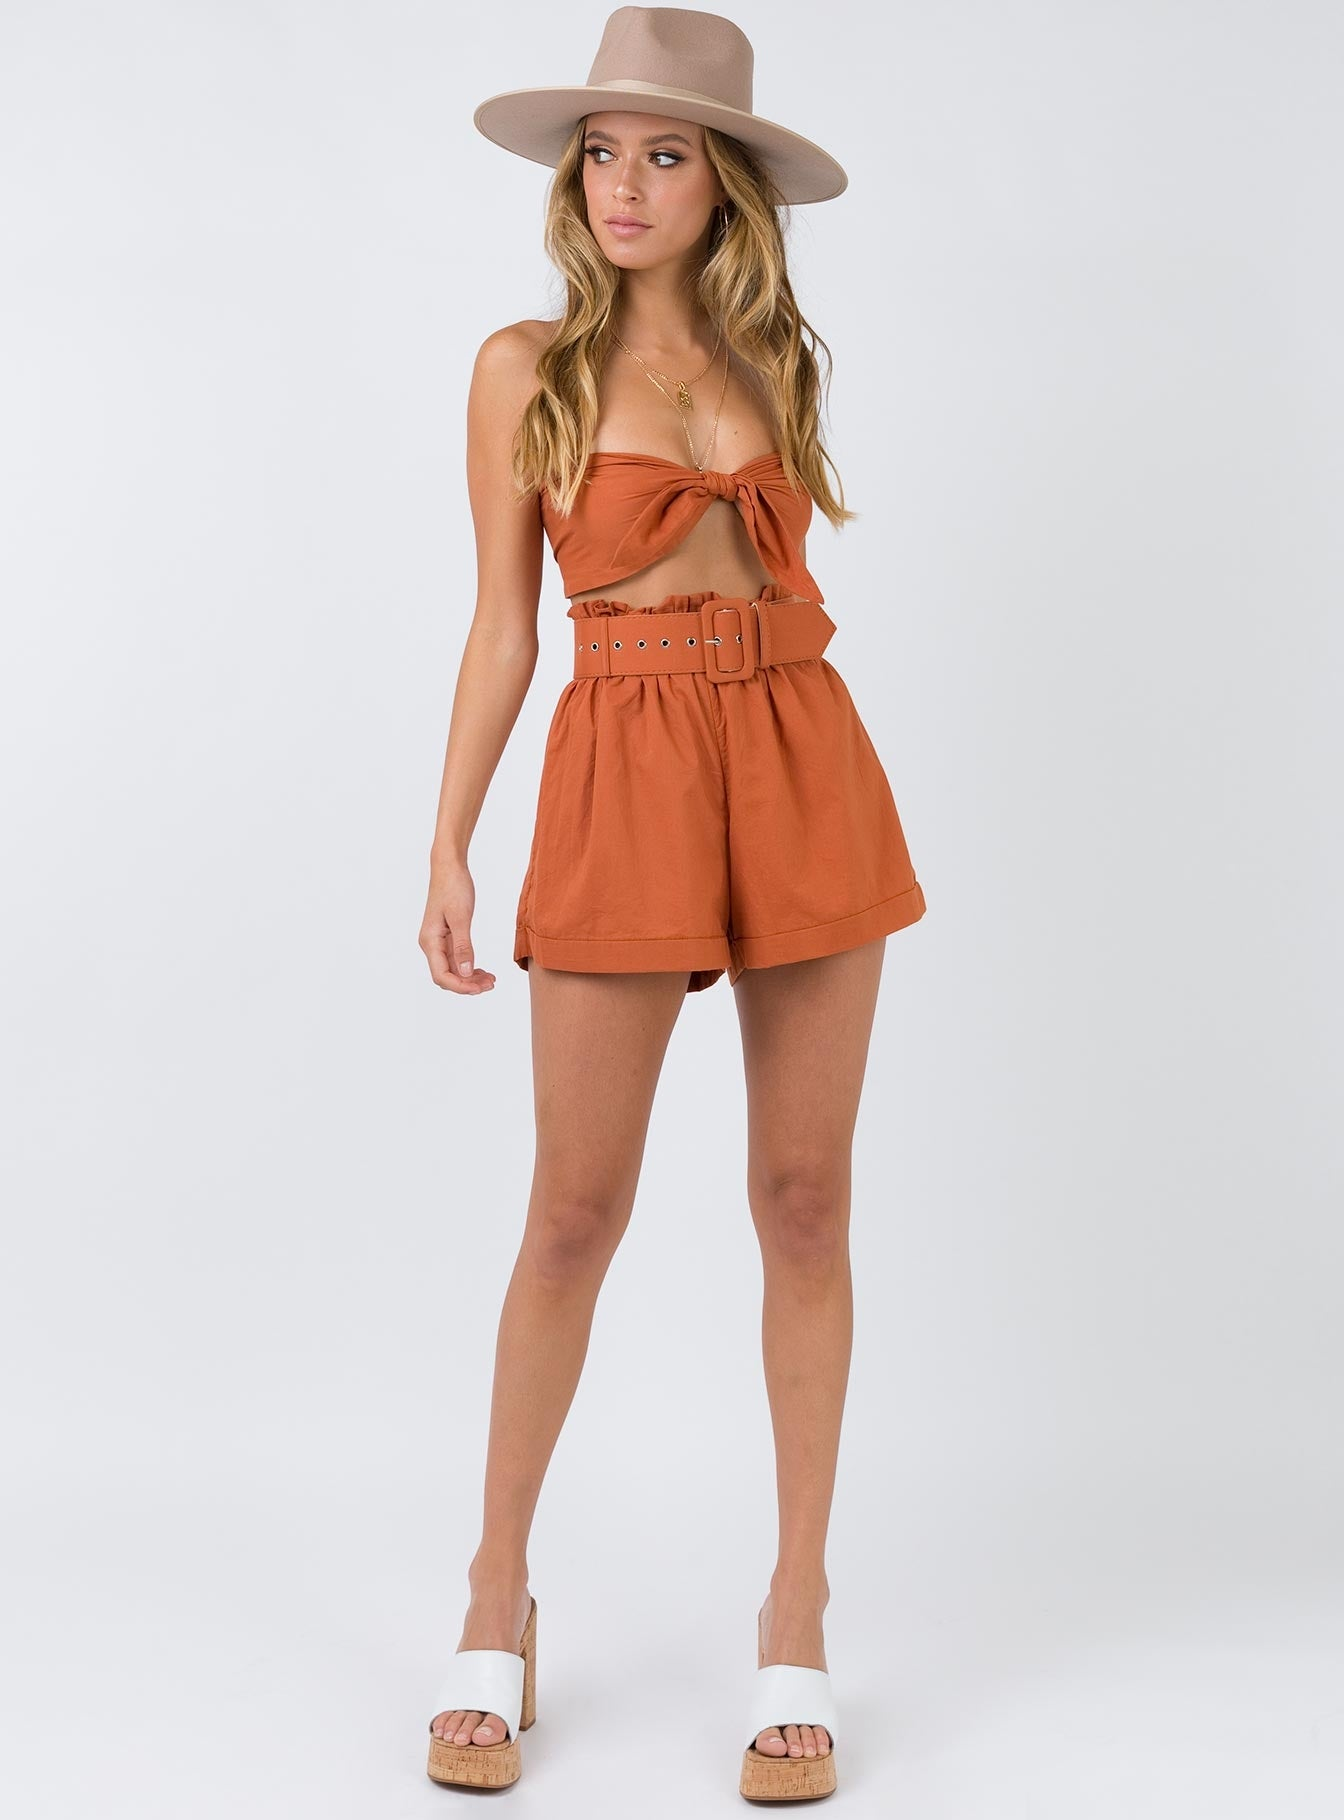 The Maxine Set Burnt Orange